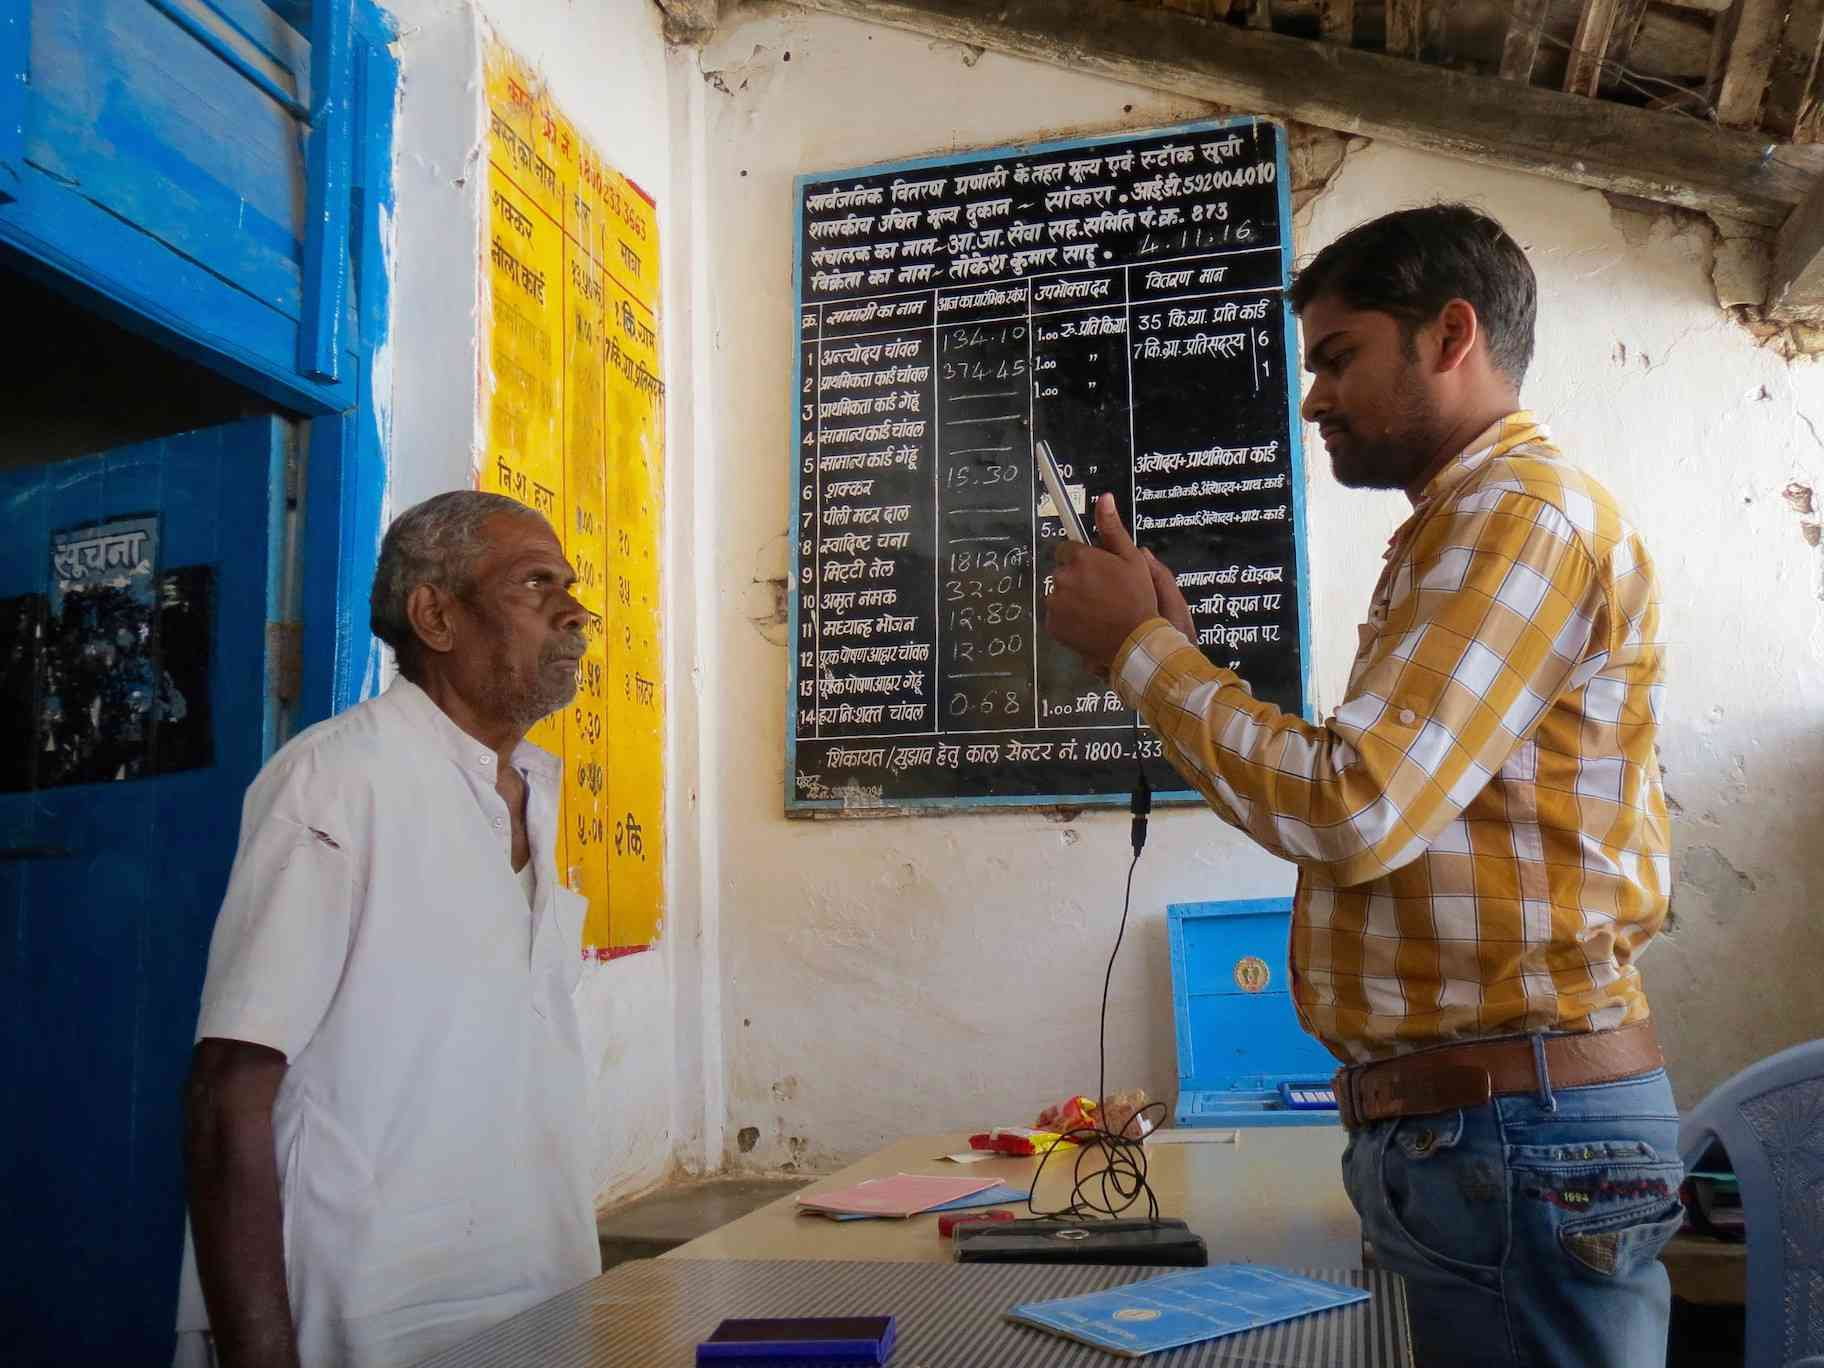 In Chhattisgarh, the government allowed ration shop dealers to take photographs of beneficiaries instead of scanning their fingerprints using Aadhaar-enabled machines.